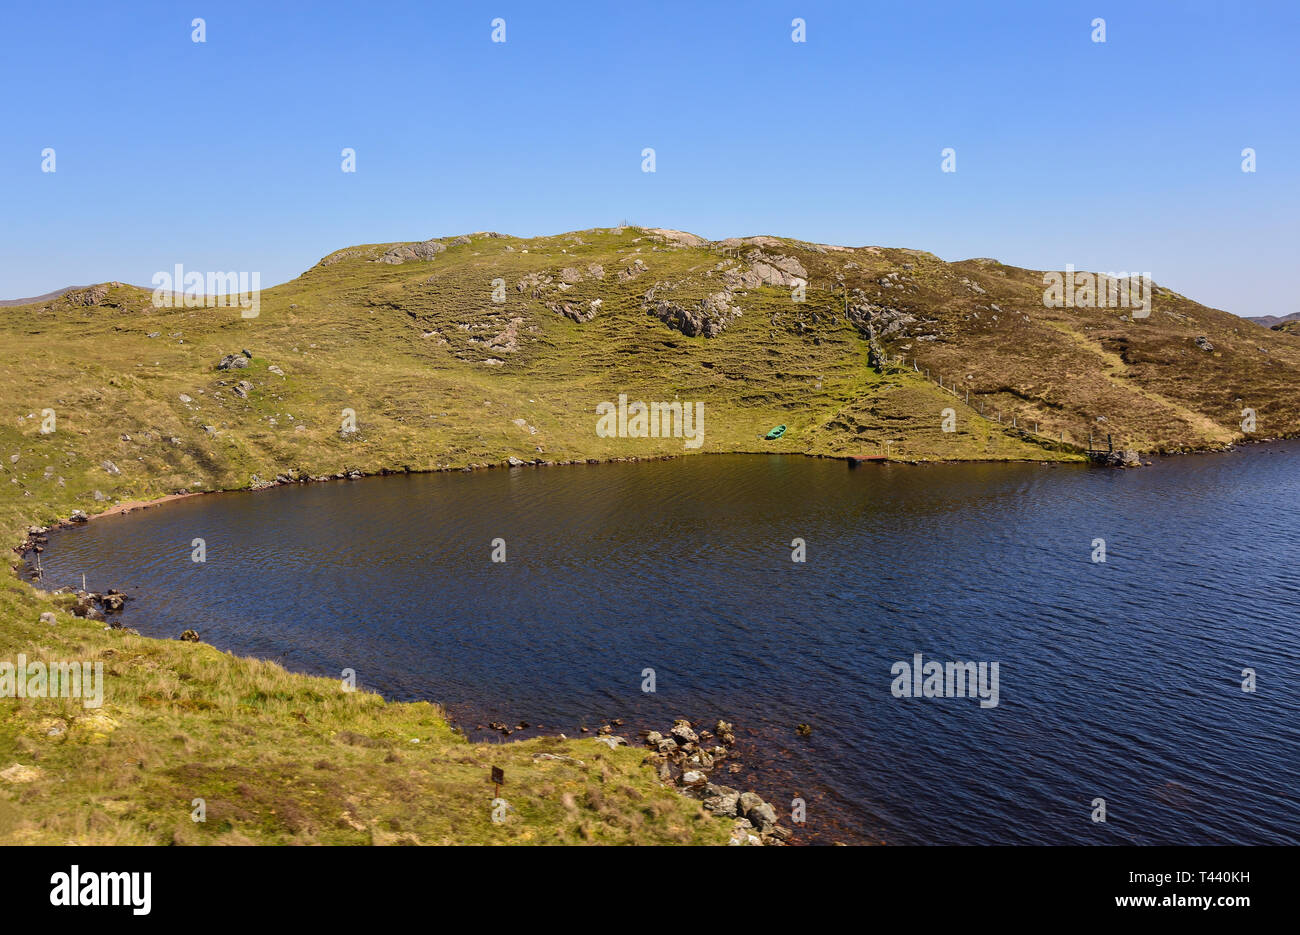 The Machair landscape in central Harris, Isle of Harris, Outer Hebrides, Na h-Eileanan Siar, Scotland, United Kingdom - Stock Image